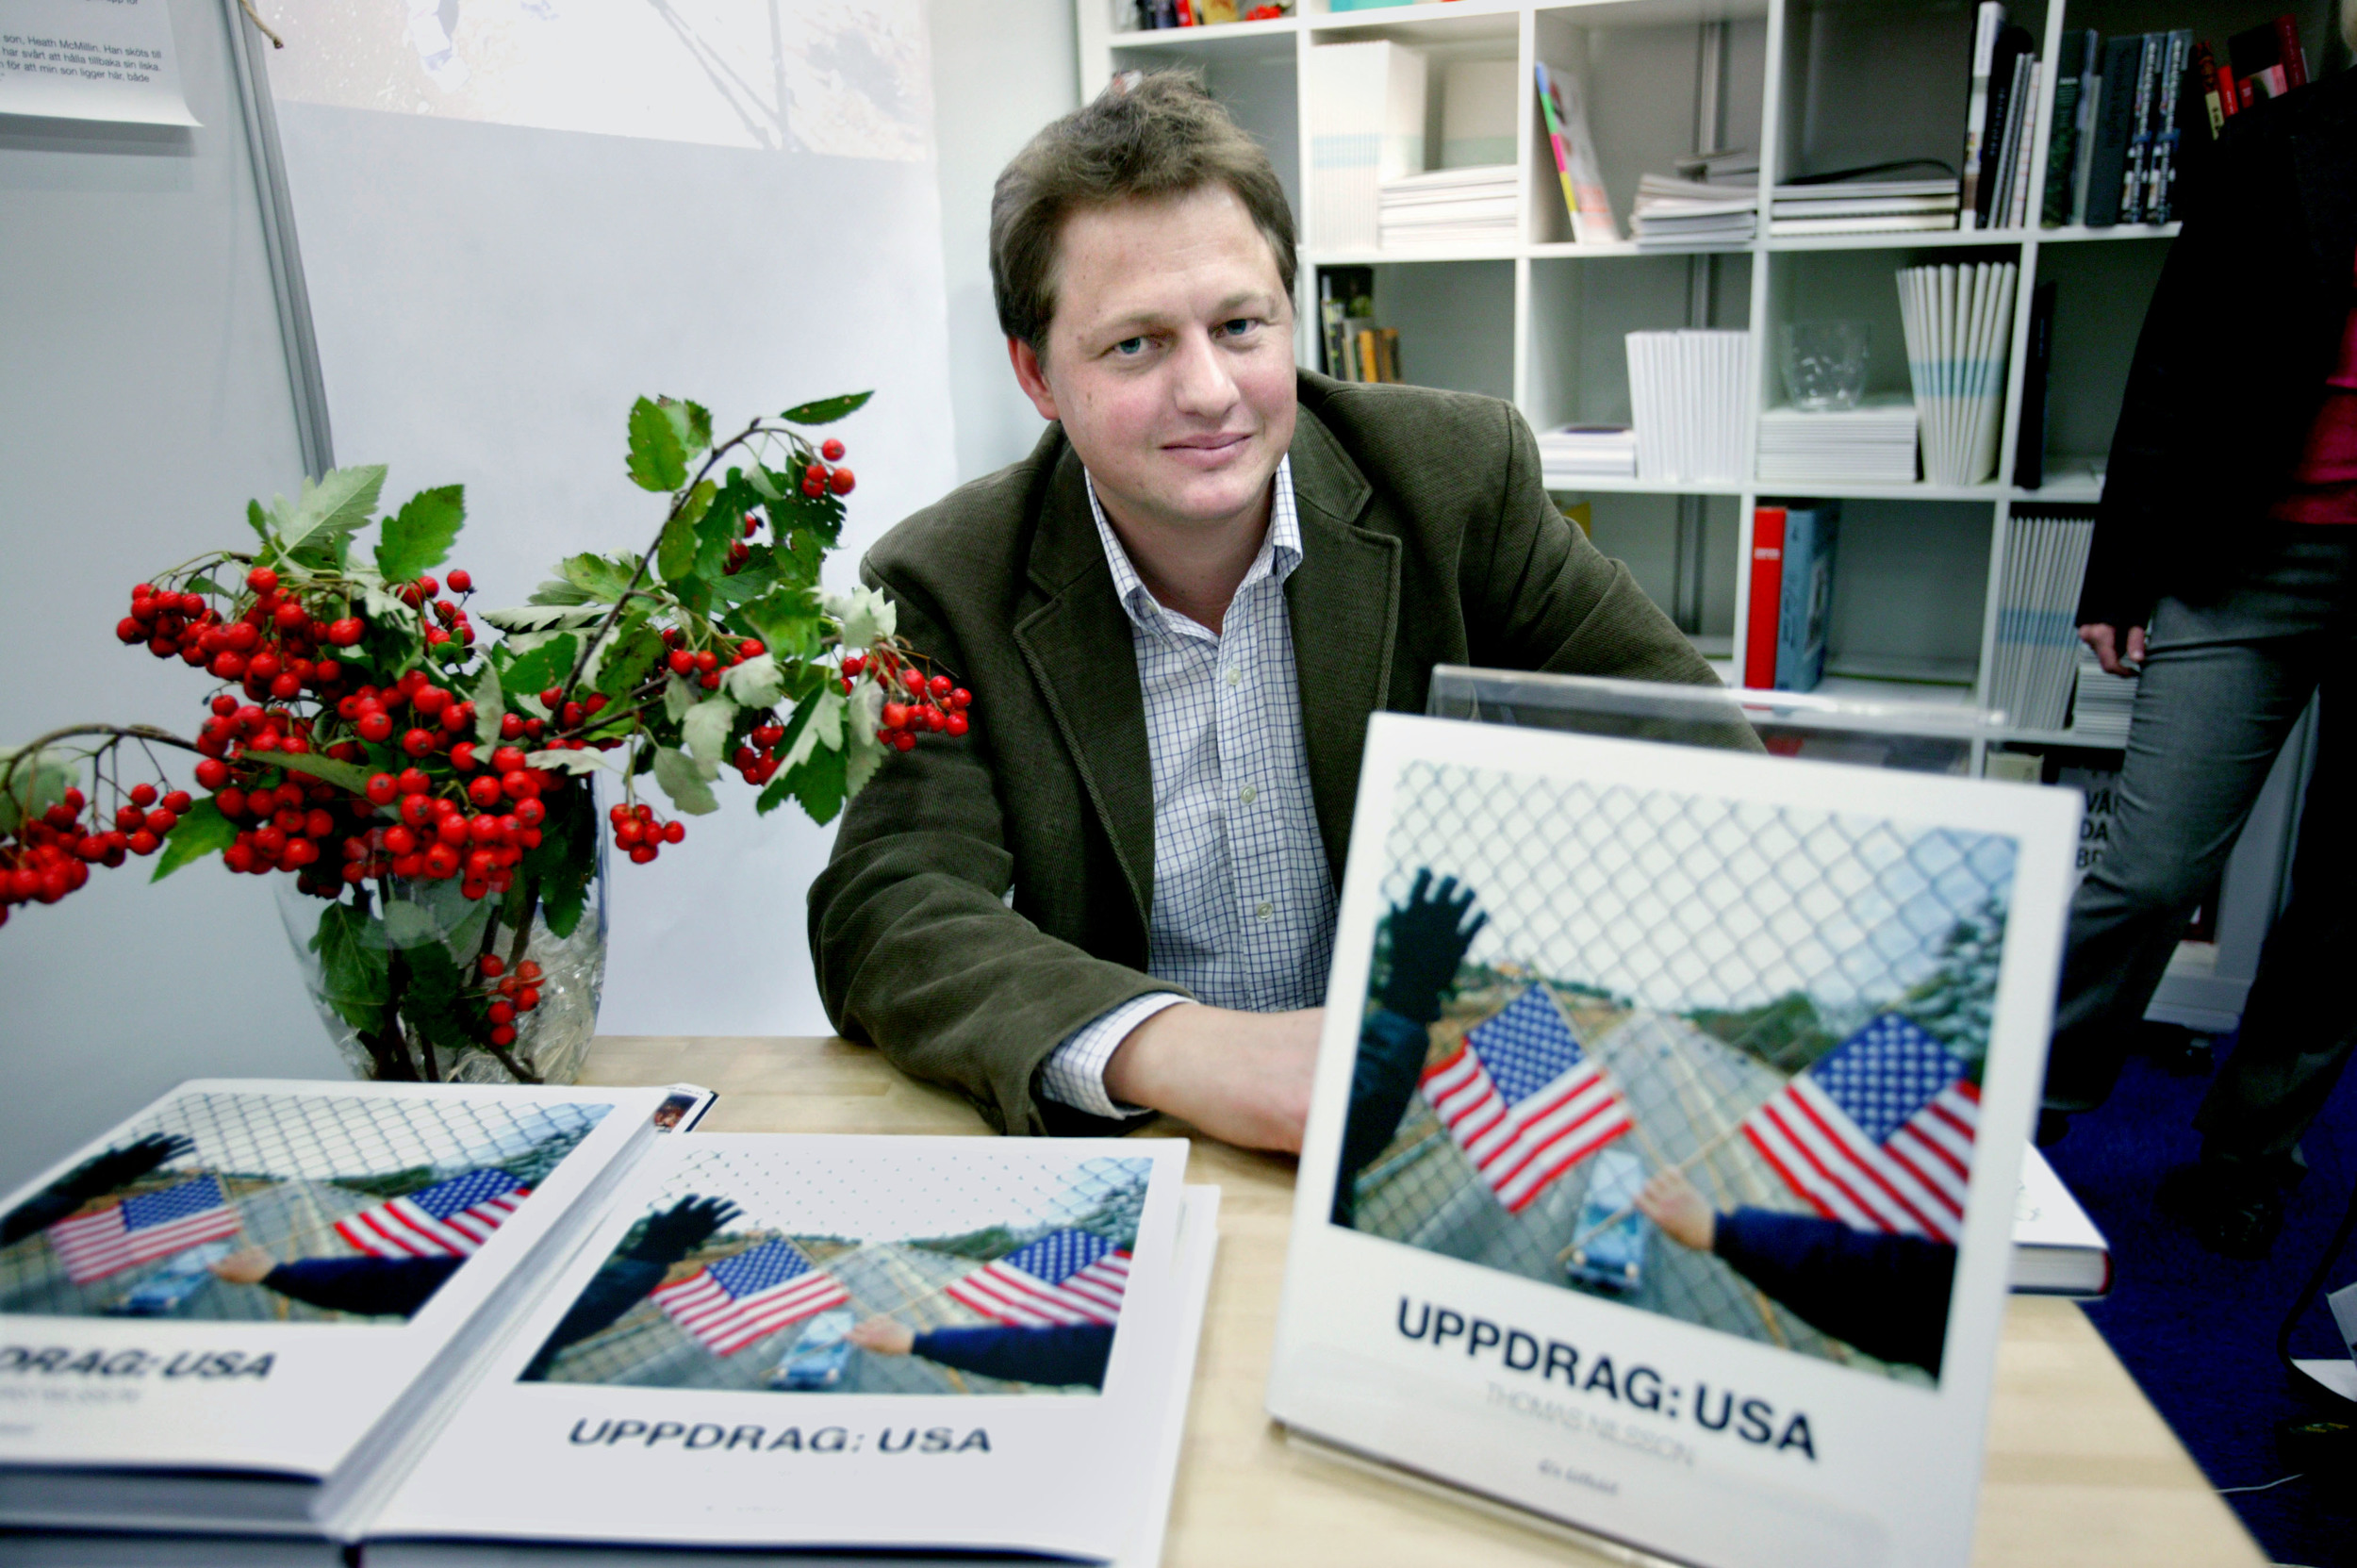 Photographer Thomas Nilsson at the Gothenburg Book Fair in September 2004 with his photo book Uppdrag: USA (Assignment: USA), published the same month by C/o Lillebil. ISBN: 91-975078-0-6.  Read more here.